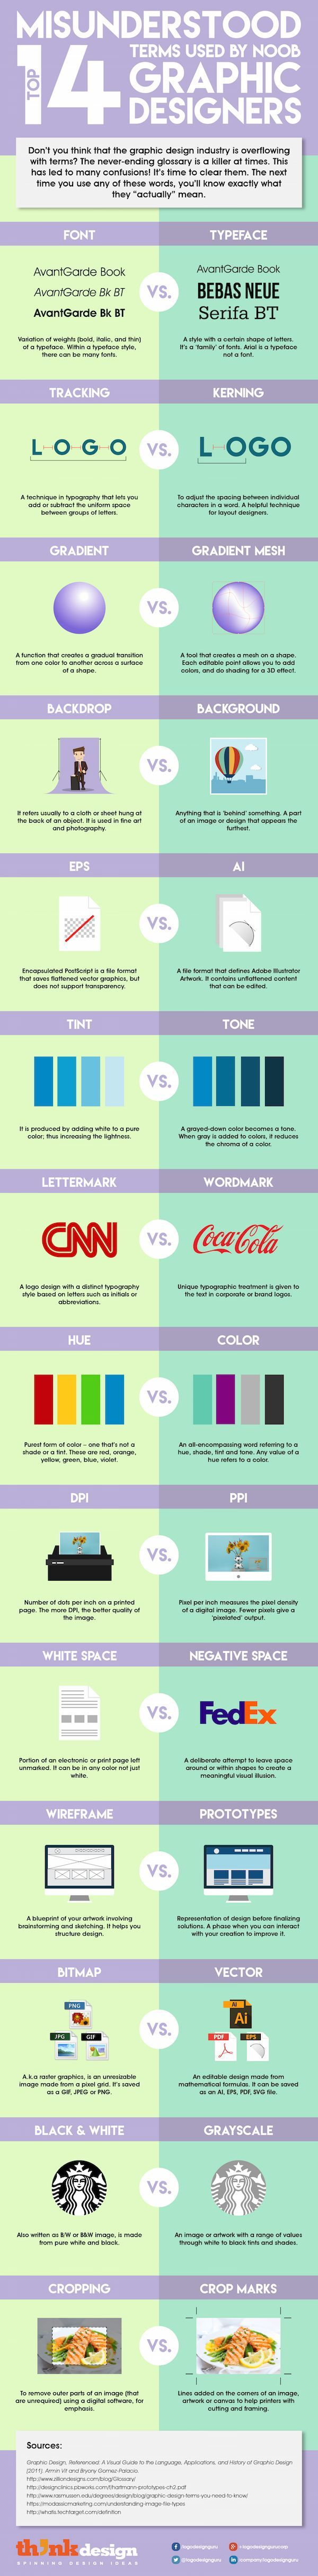 Infographic: Top 14 Graphic Design Terms Commonly Misused By Novice Creatives - http://DesignTAXI.com